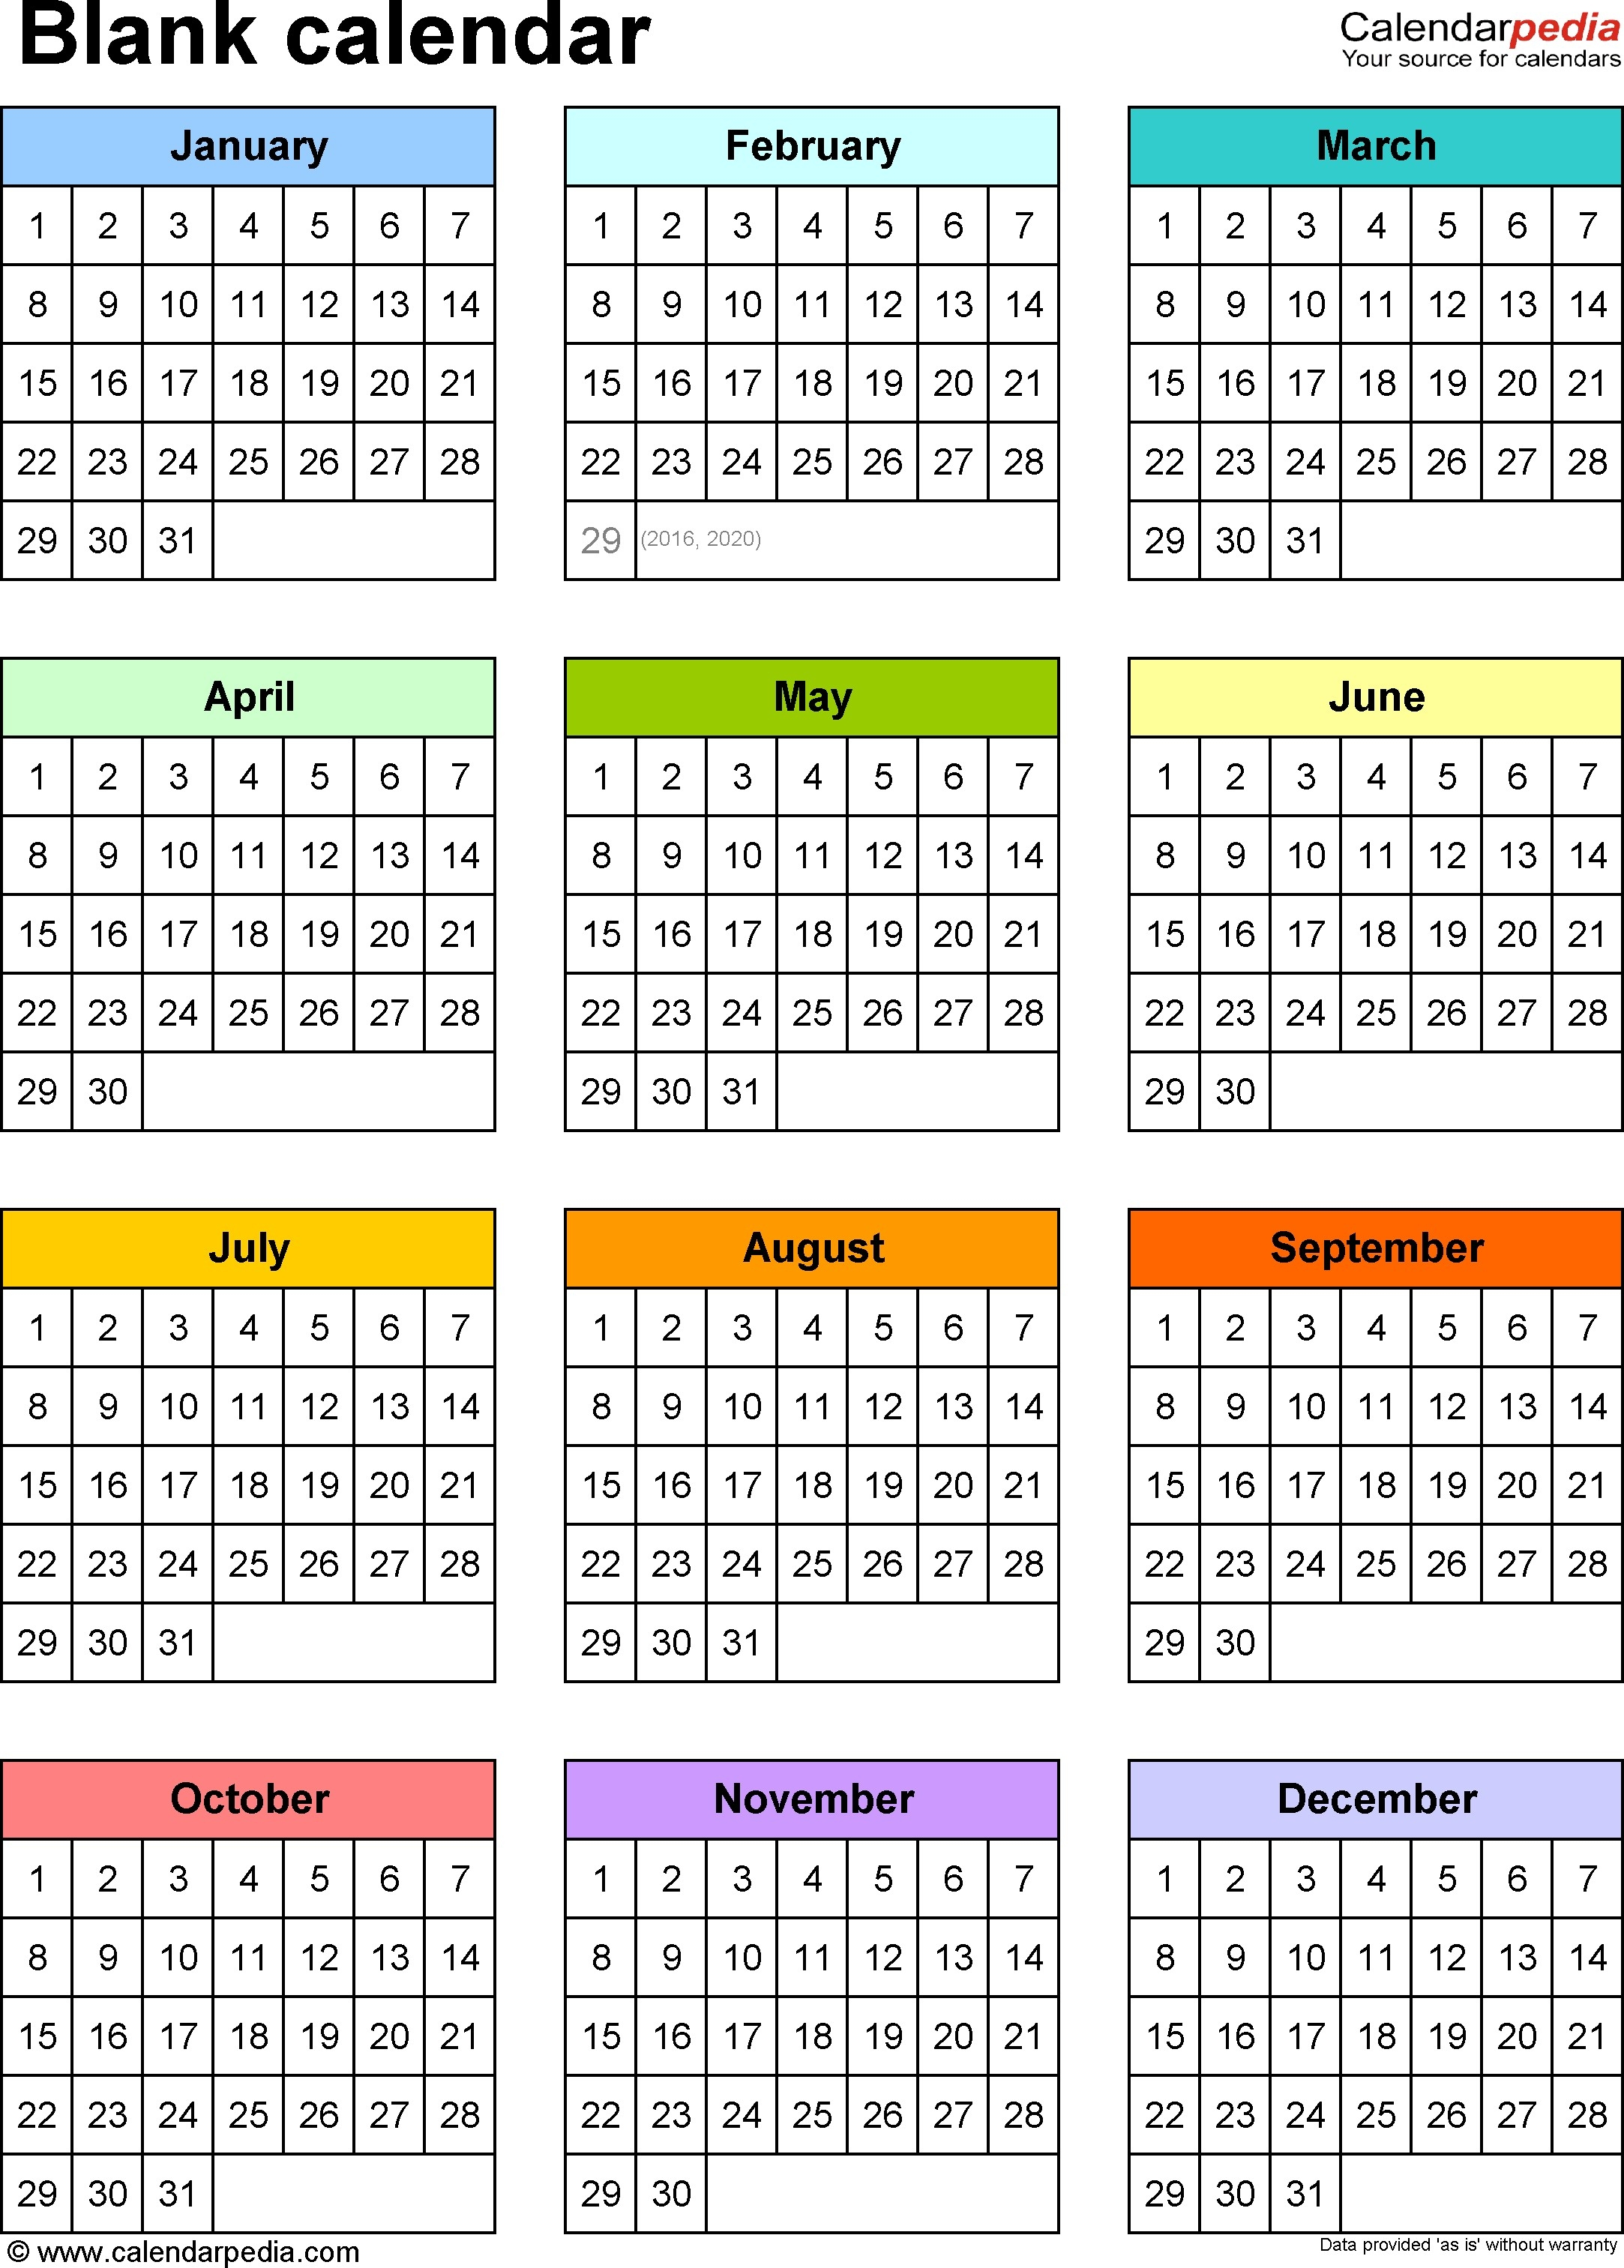 Month At A Glance Blank Calendar Template - 2018 Calendar-Month At A Glance Blank Calendar Printable